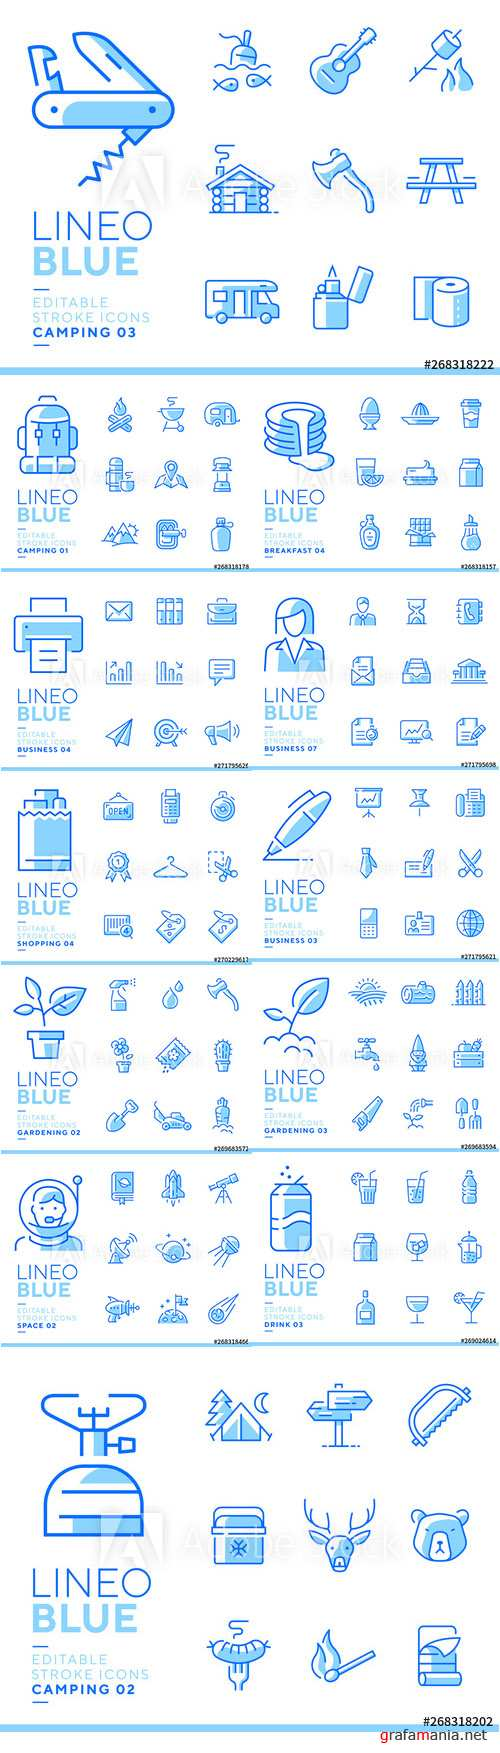 Lineo Blue - Line Icons Vector Pack Vol 2